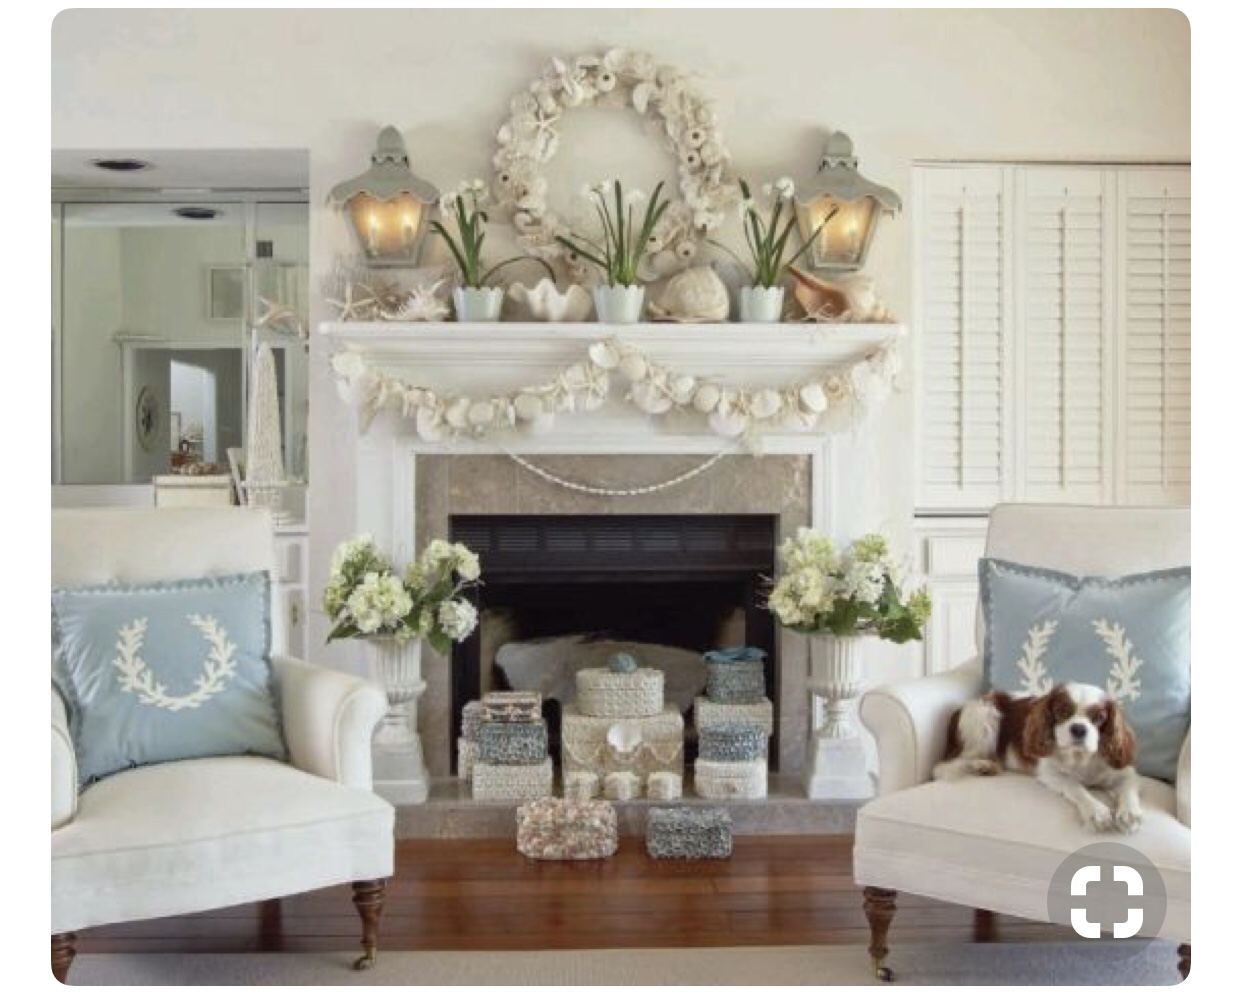 i have a beautiful pinterest board called coastal christmas decor that i have kept for years here is an image i have always loved and it has served as - Coastal Christmas Decor